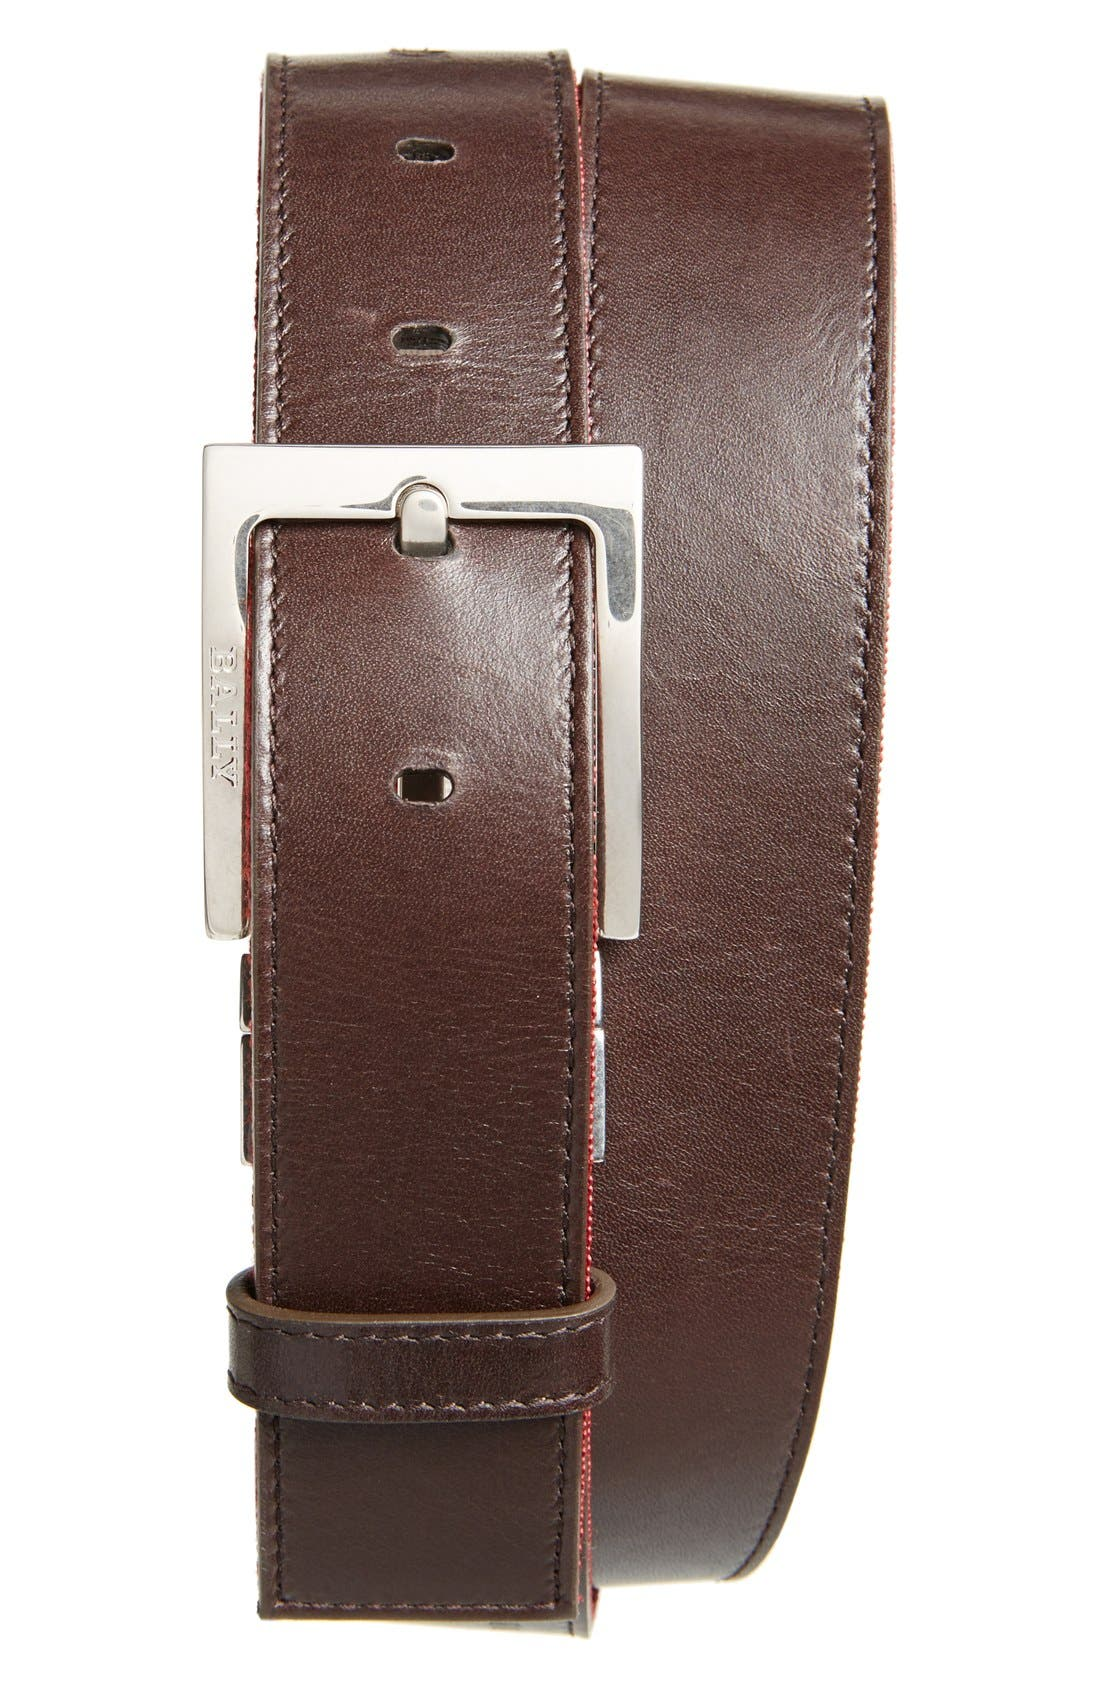 'Tonni' Stripe Canvas & Leather Belt,                             Alternate thumbnail 2, color,                             Chocolate/ Red/ Beige